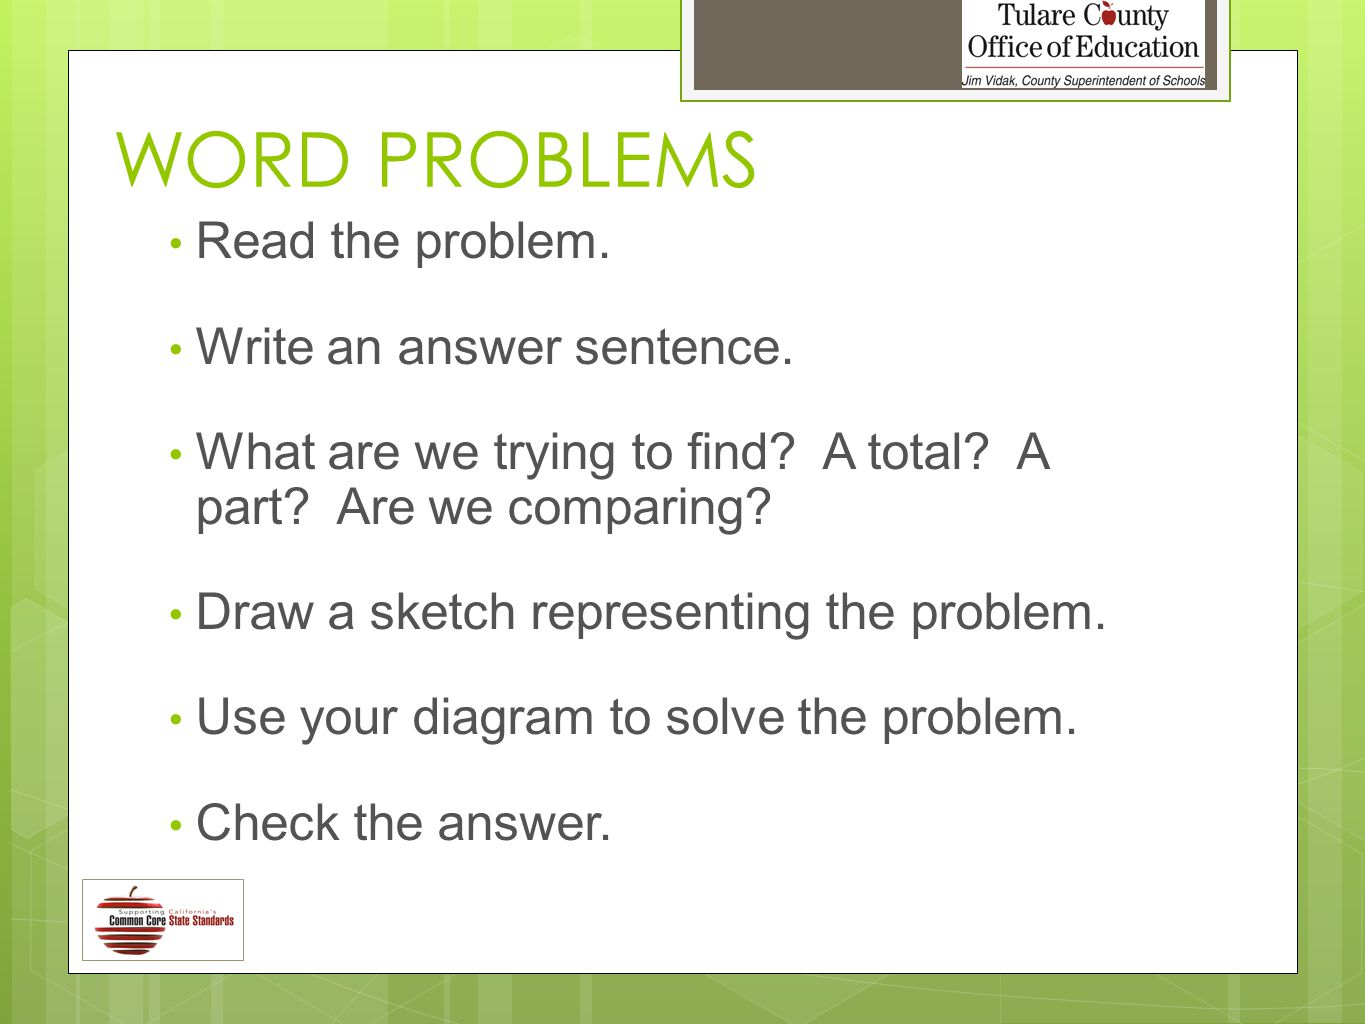 WORD PROBLEMS Read the problem. Write an answer sentence.